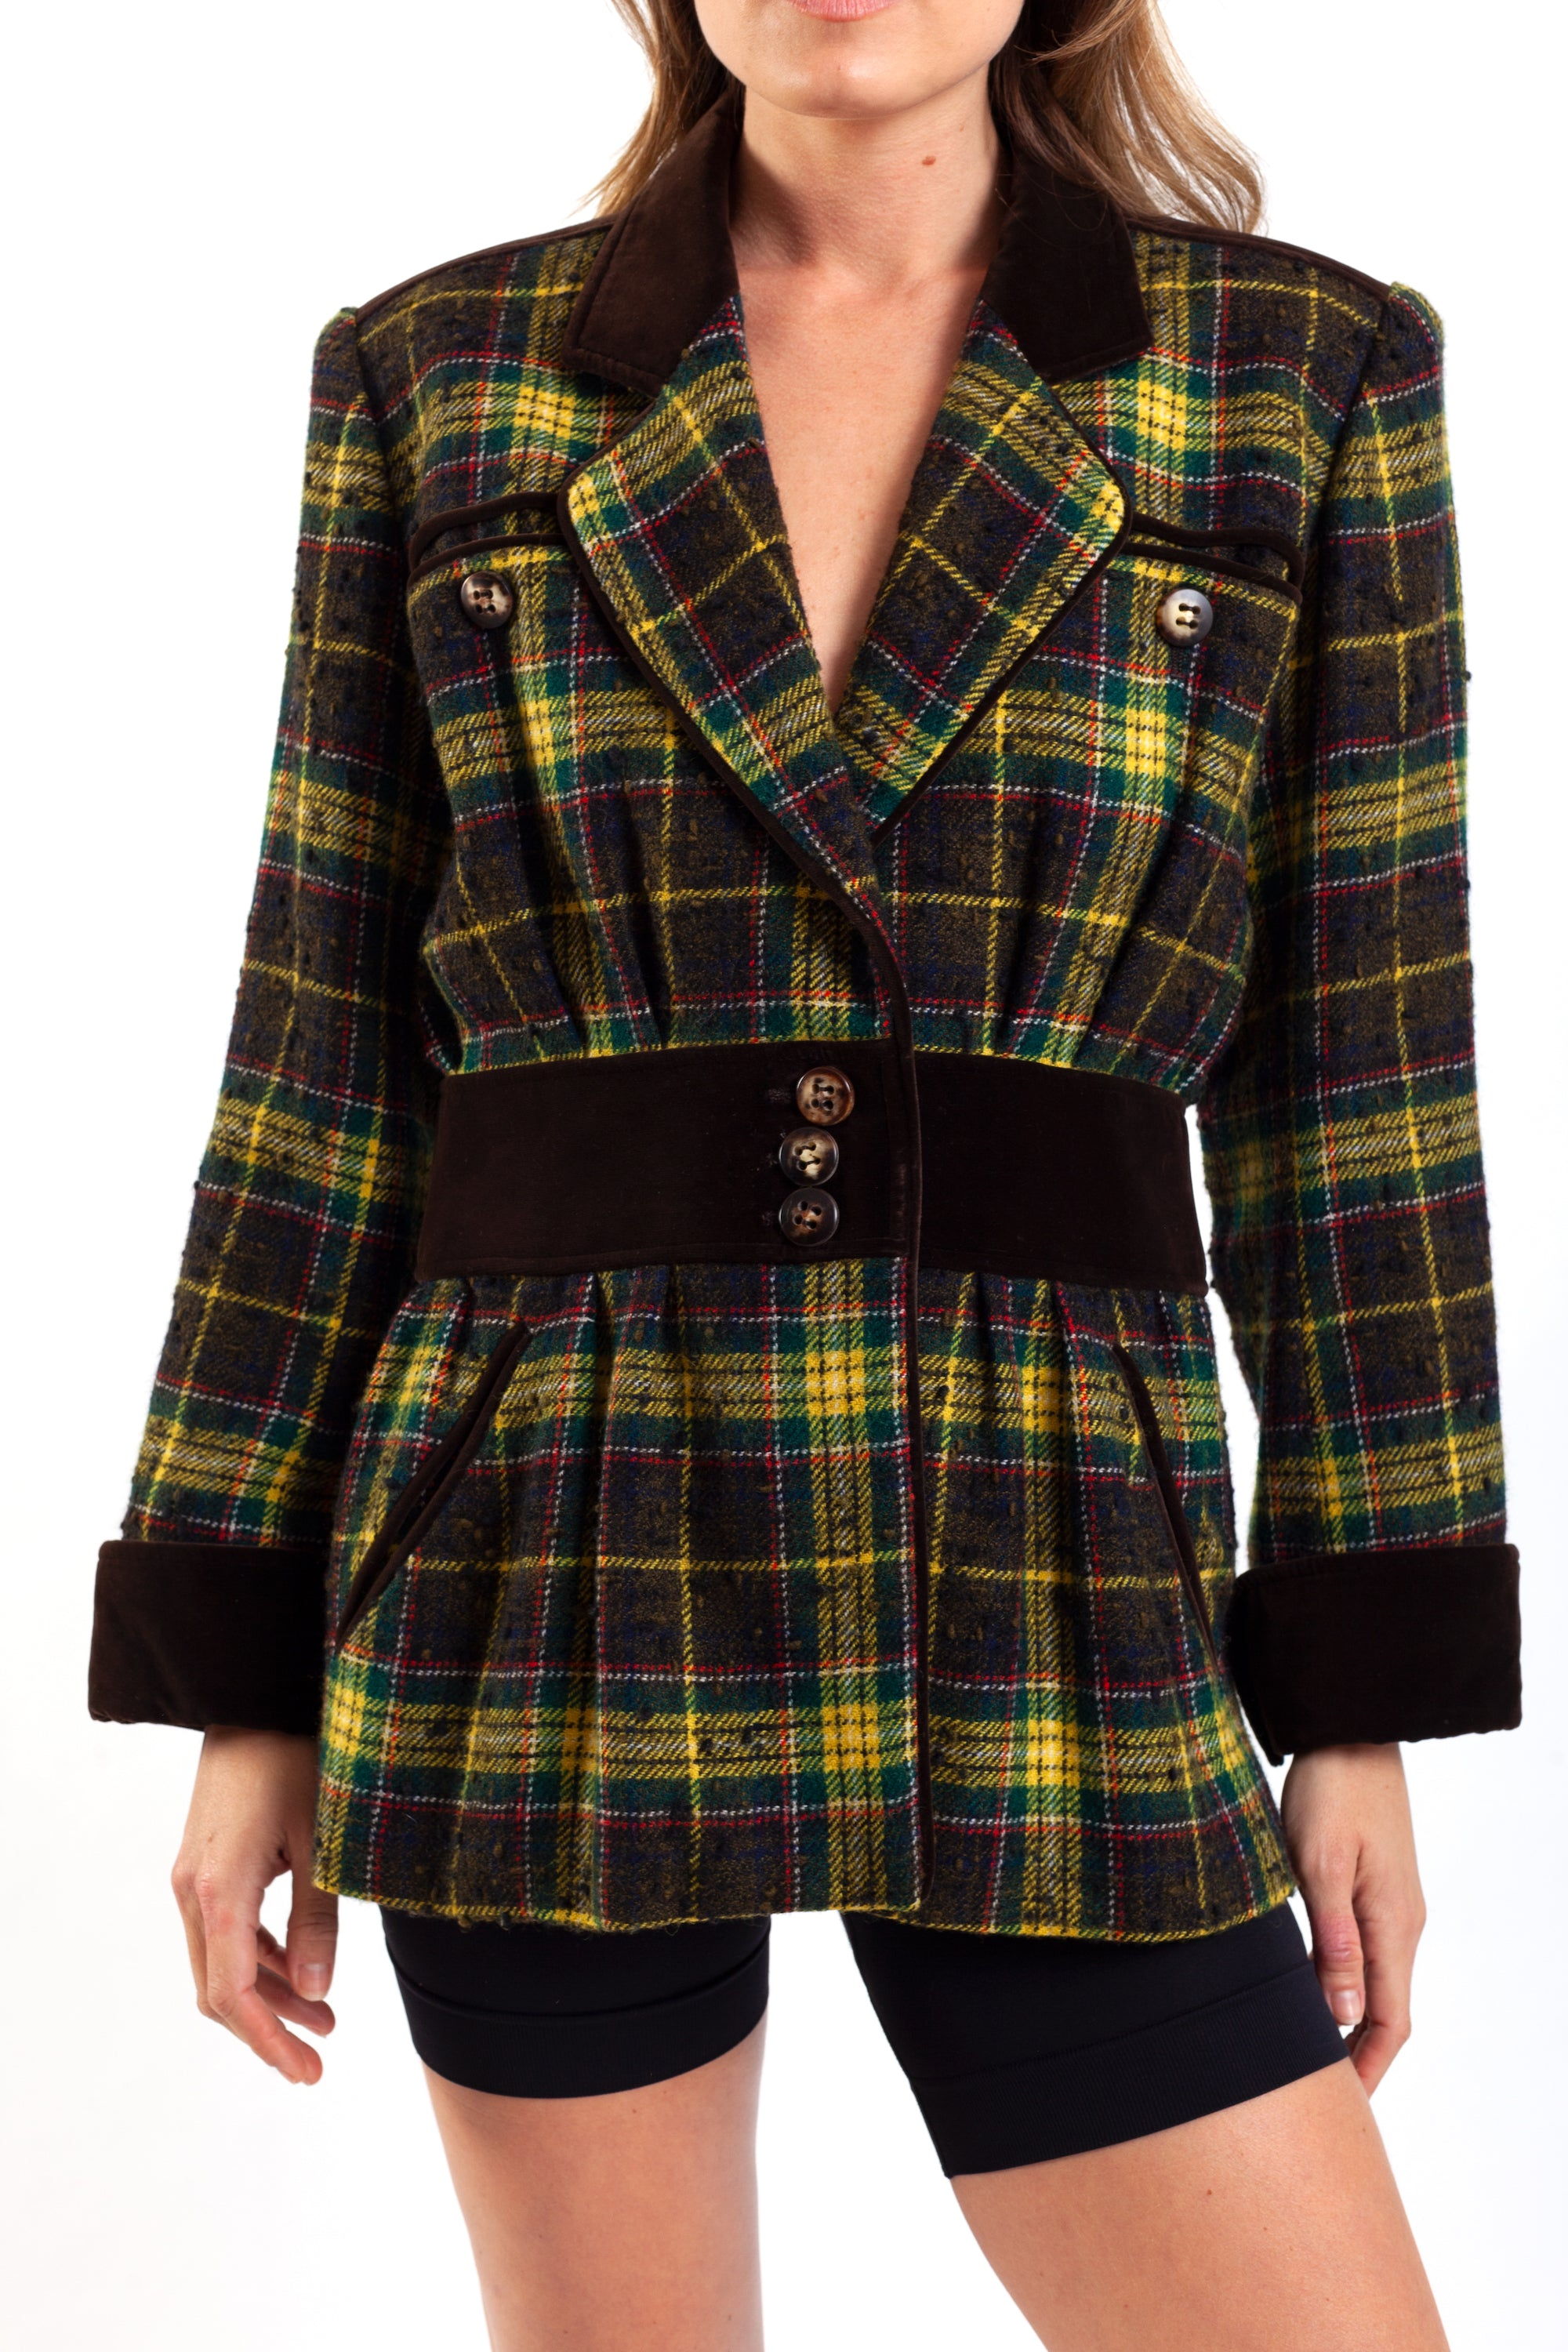 Yves Saint Laurent <br> 1970's Rive Gauche plaid riding blazer